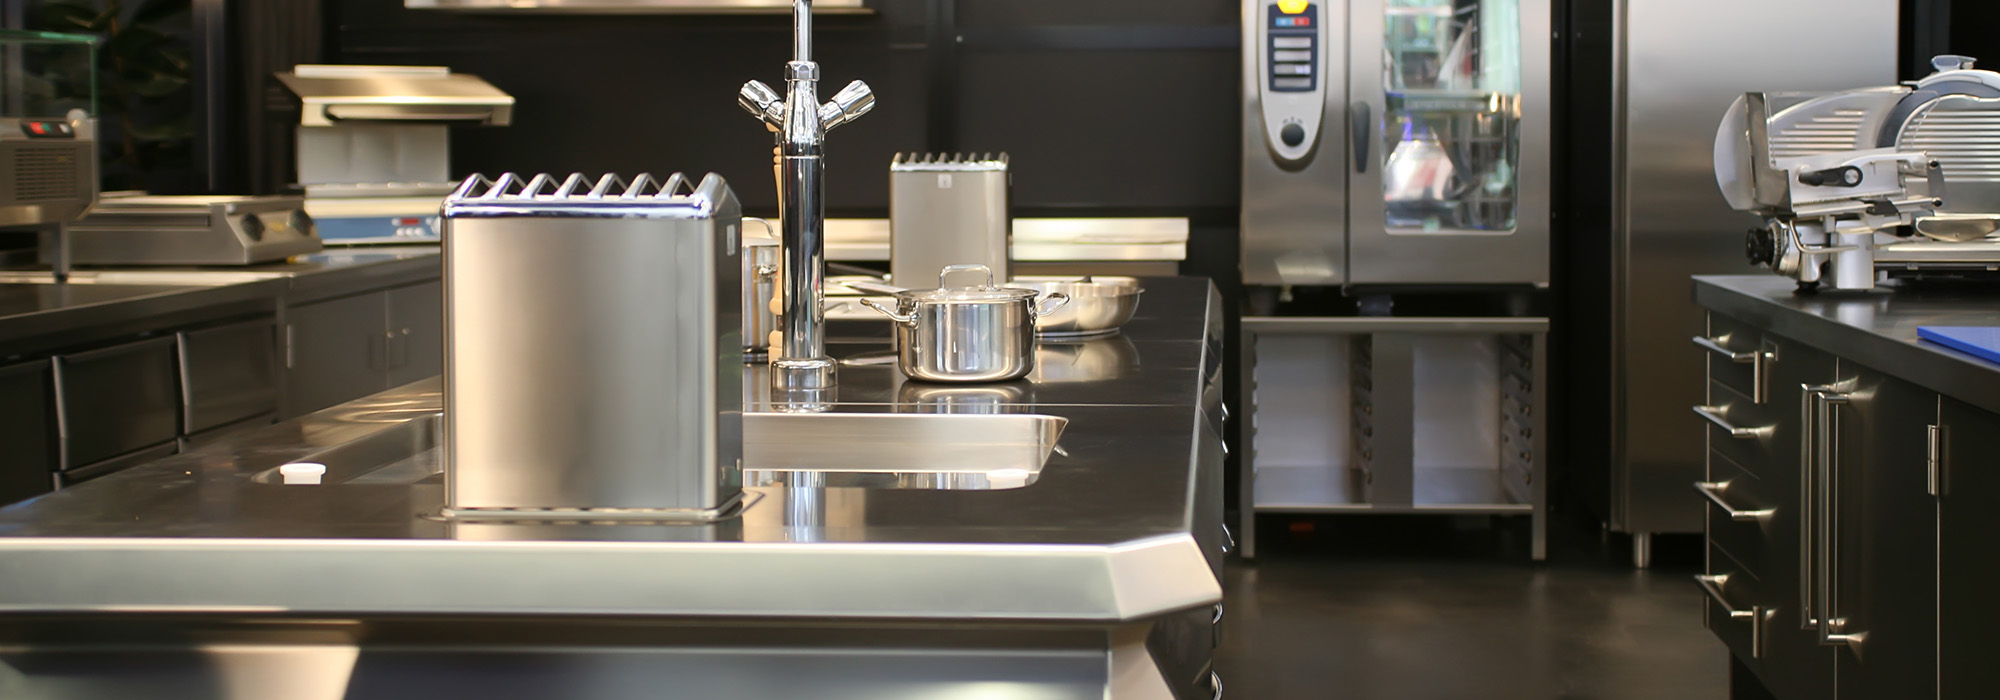 PROFESSIONAL STAINLESS STEEL CATERING EQUIPMENT